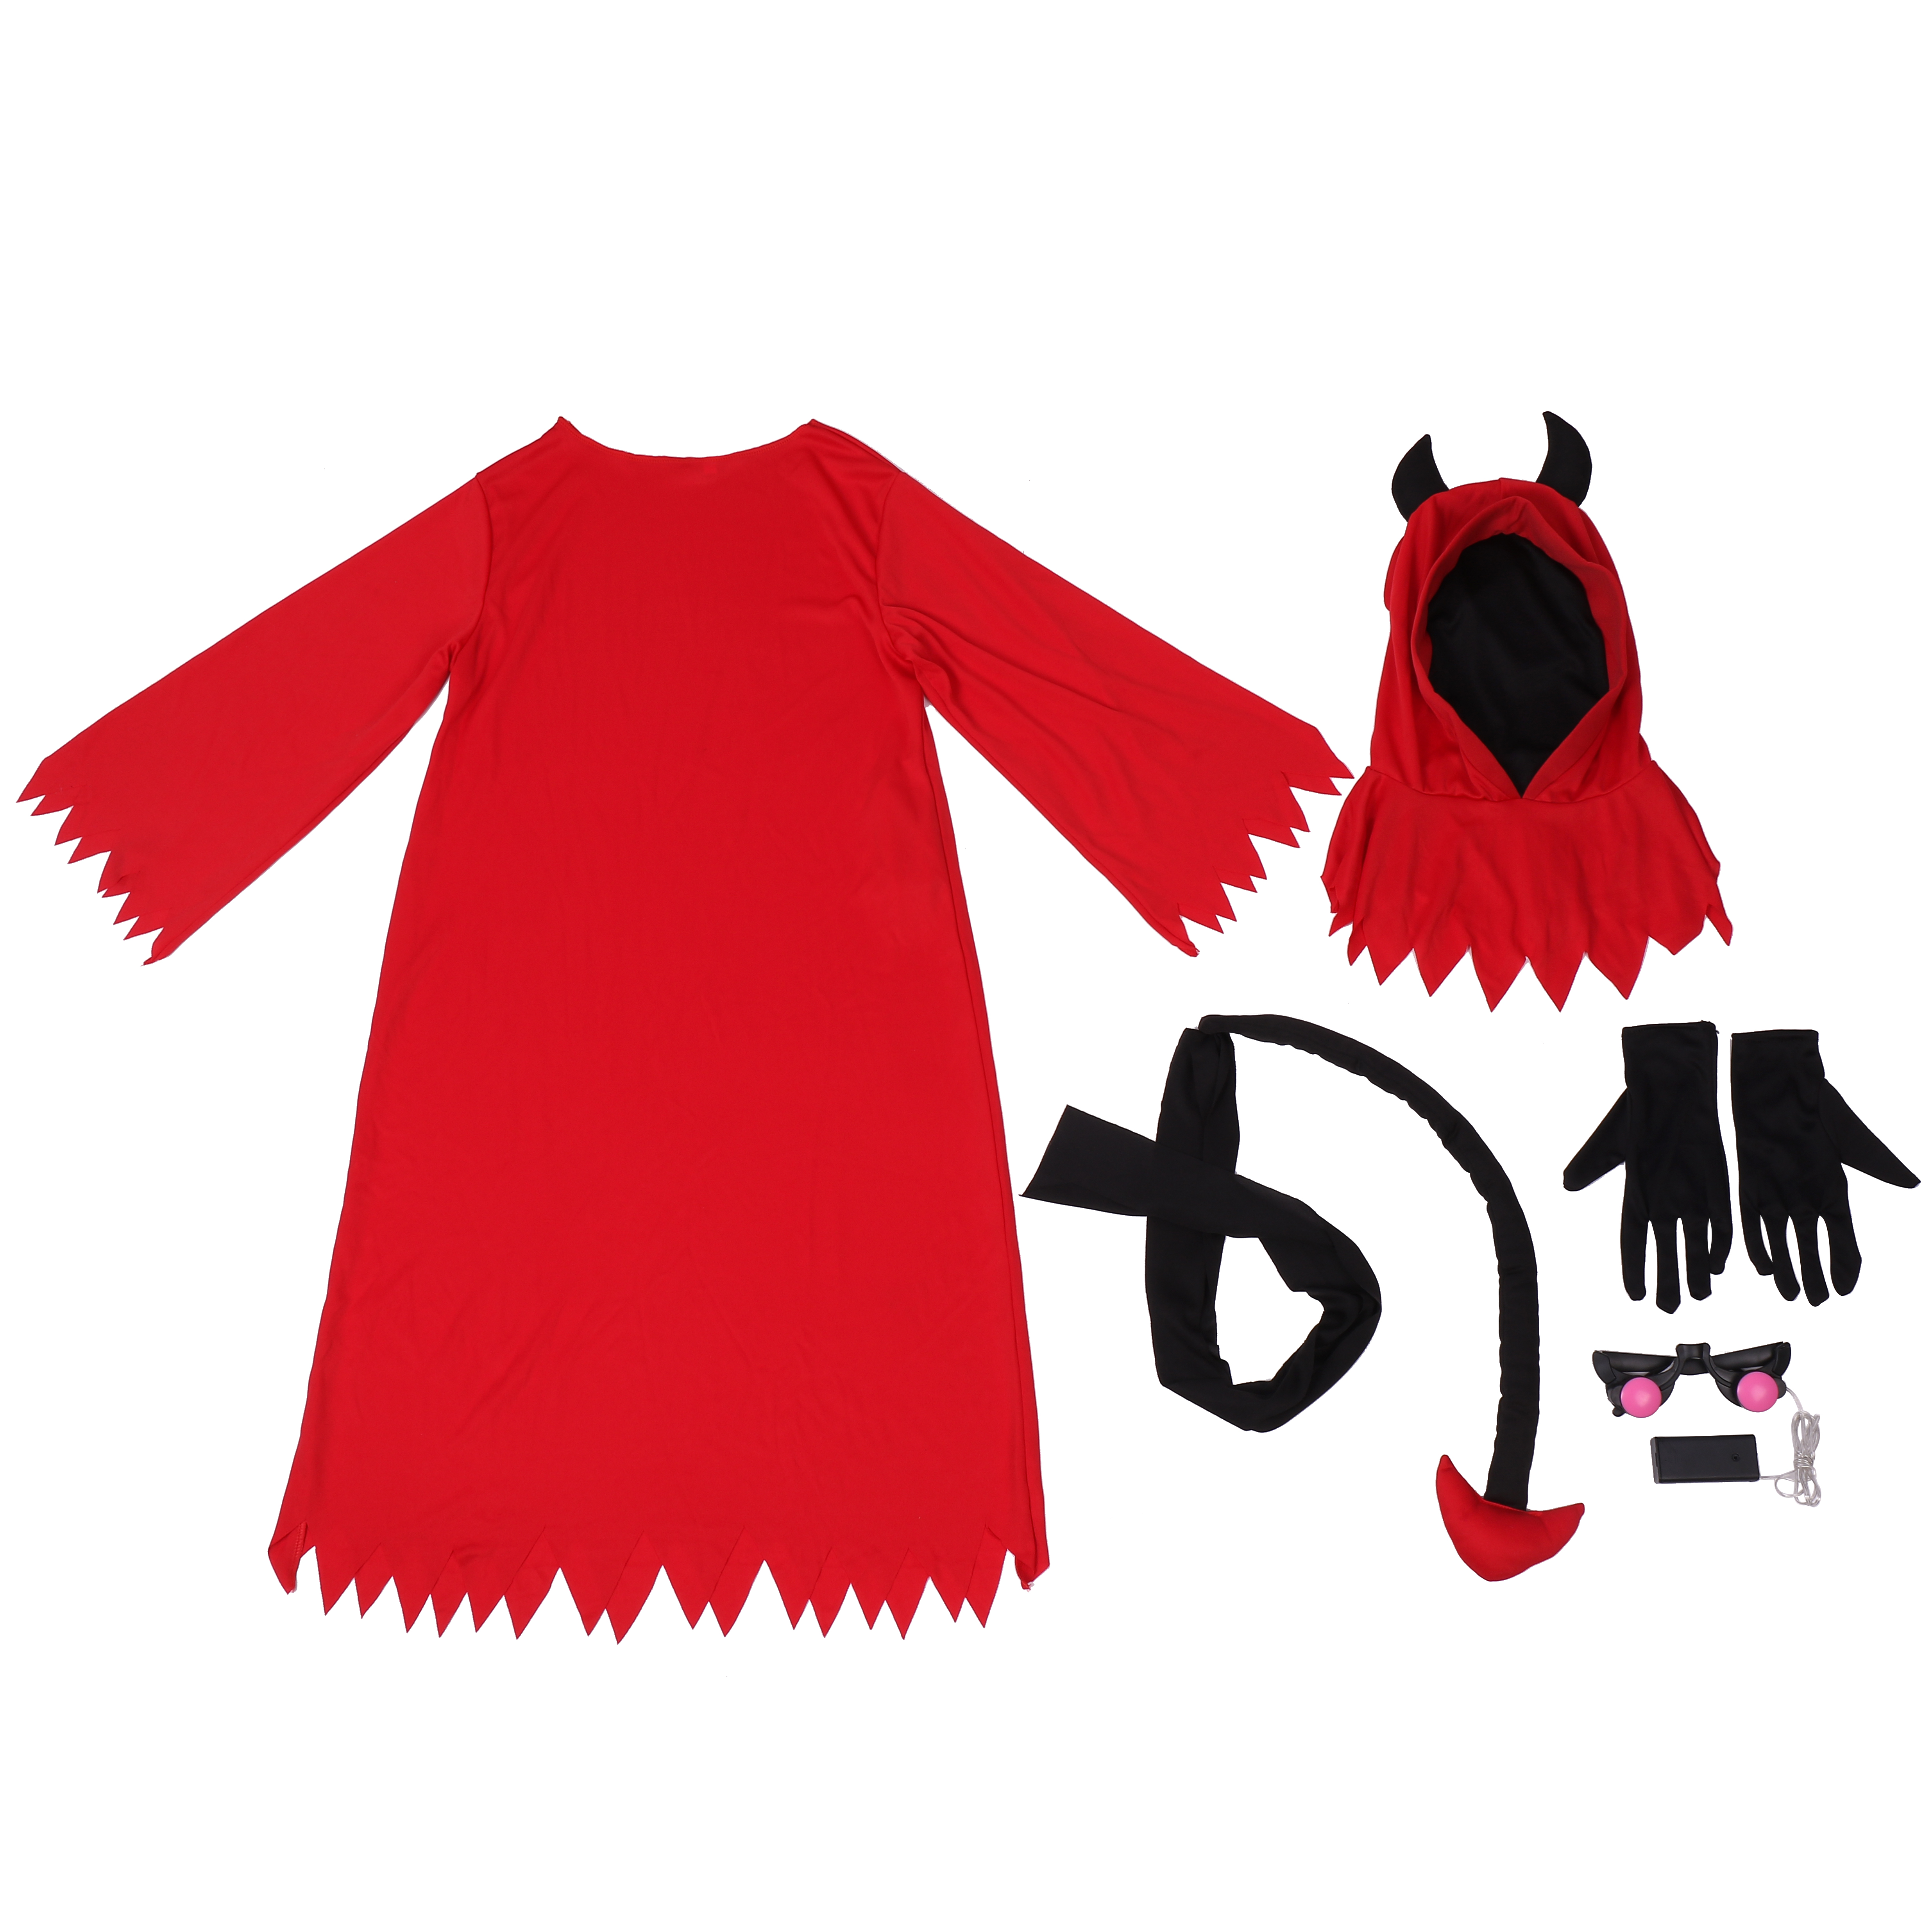 The Boys Fade In Out Devil Costume Kids Halloween Party Dress-up 4